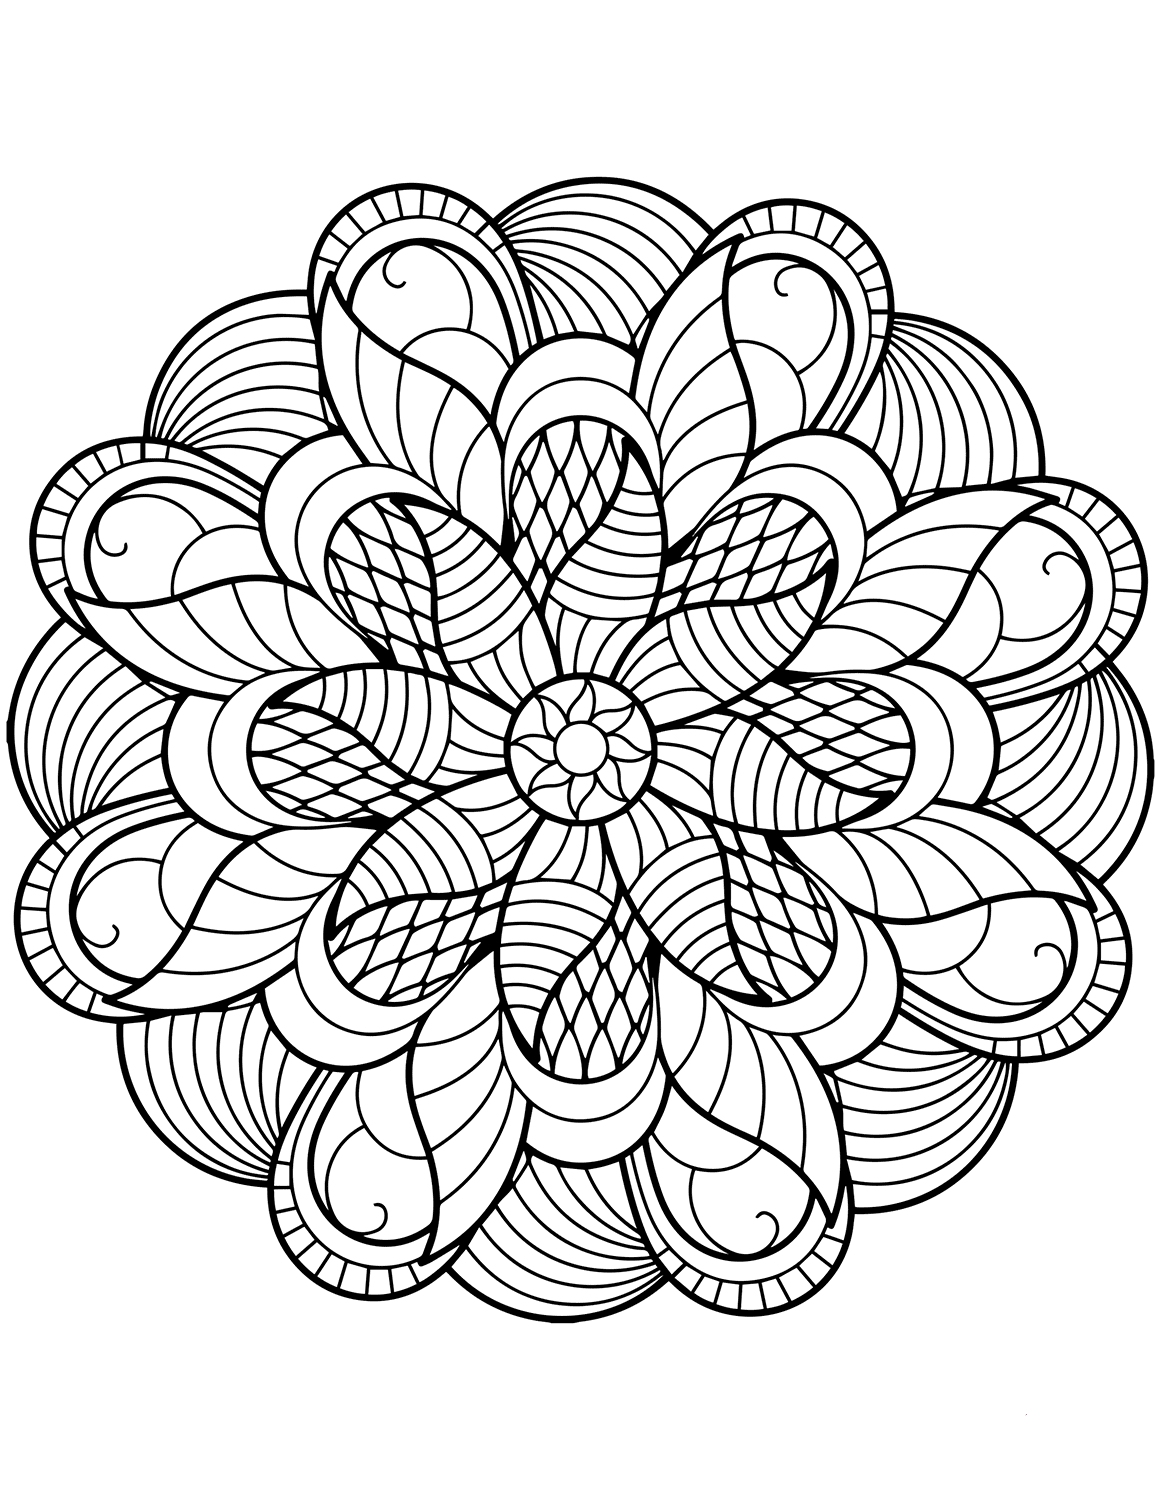 mandala to color easy mandala coloring pages that you39ll actually want to color color to mandala